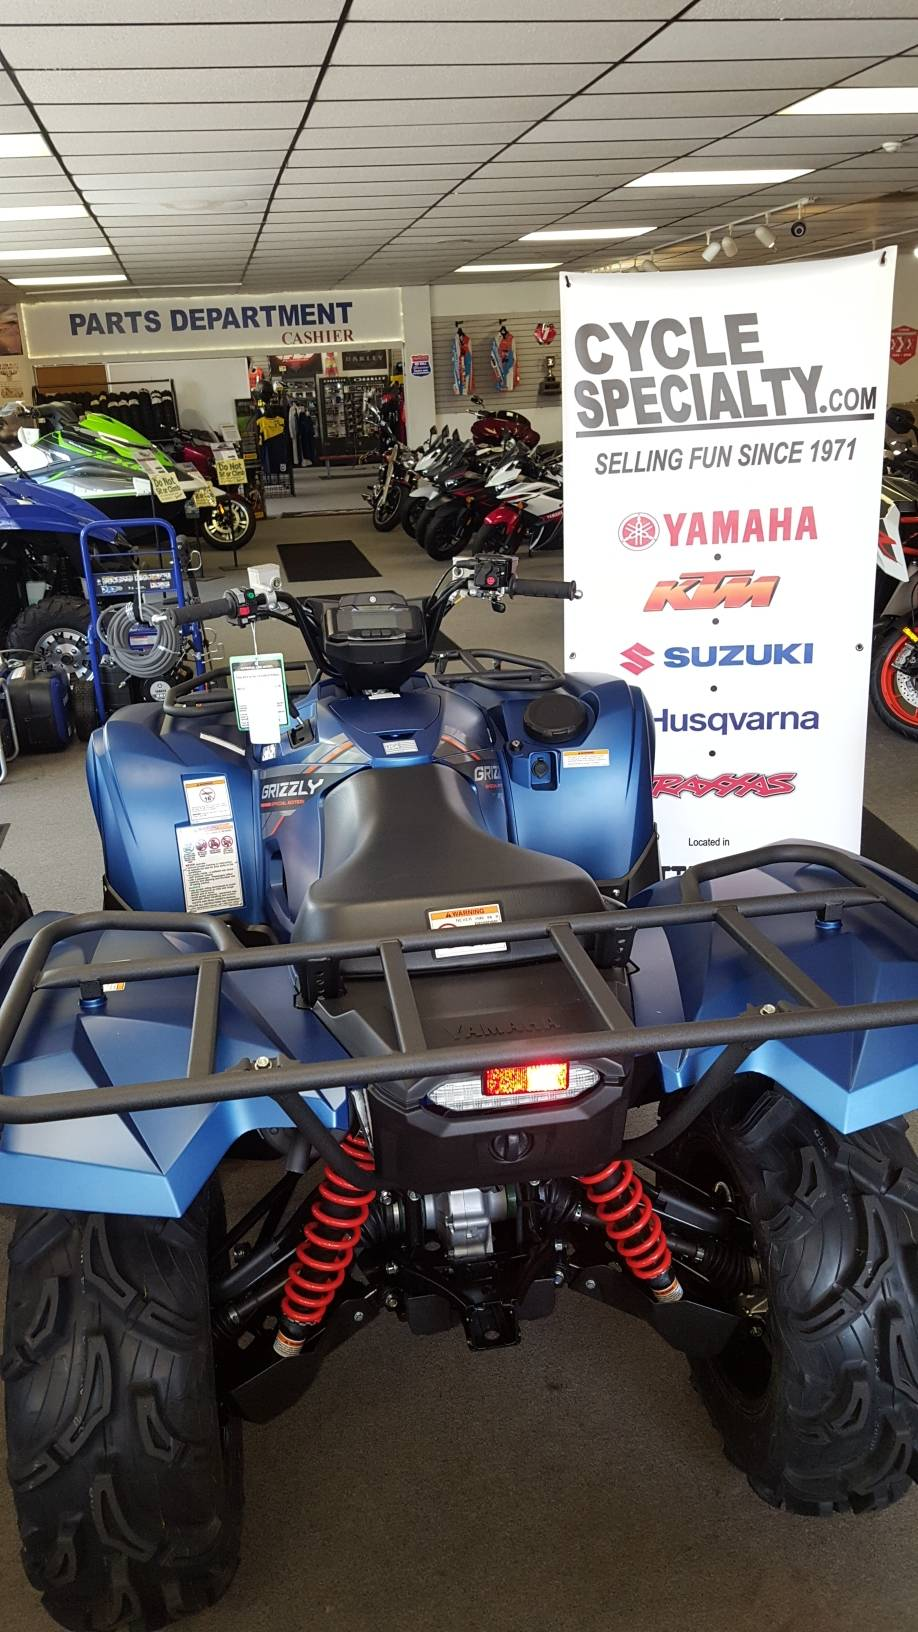 2019 Yamaha GRIZZLY 700 EPS SPECIAL EDITION in Fayetteville, Georgia - Photo 3